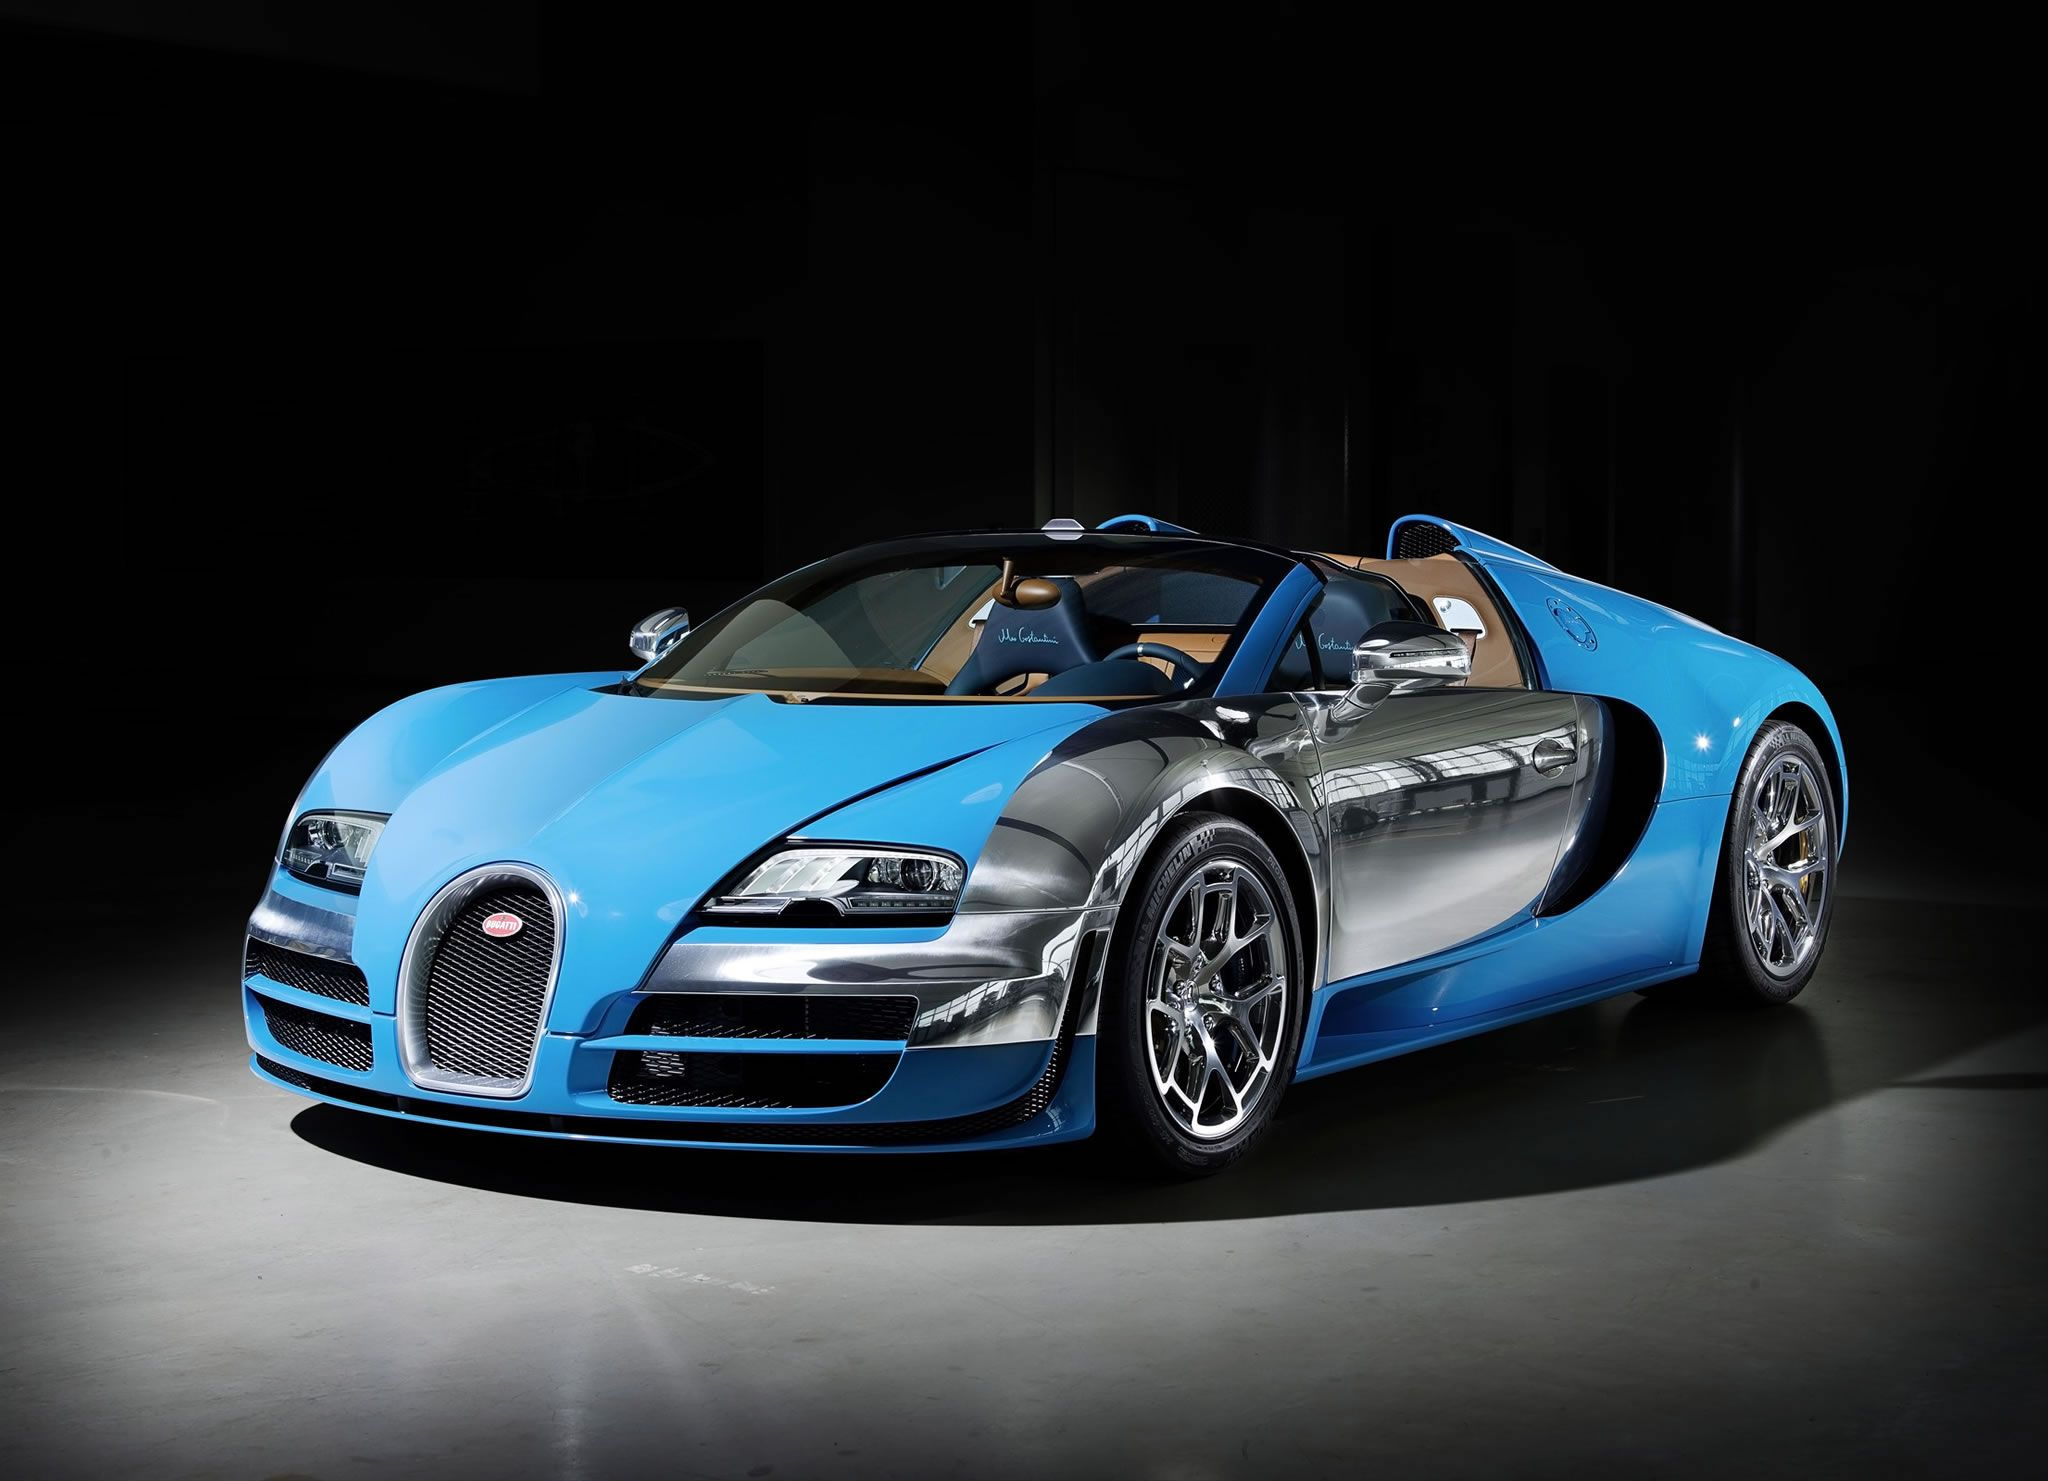 01f4ec8342f12b5cae10f9fcf7f933ee Amazing Price Of Bugatti Veyron 16.4 Grand Sport Vitesse In Real Racing 3 Cars Trend